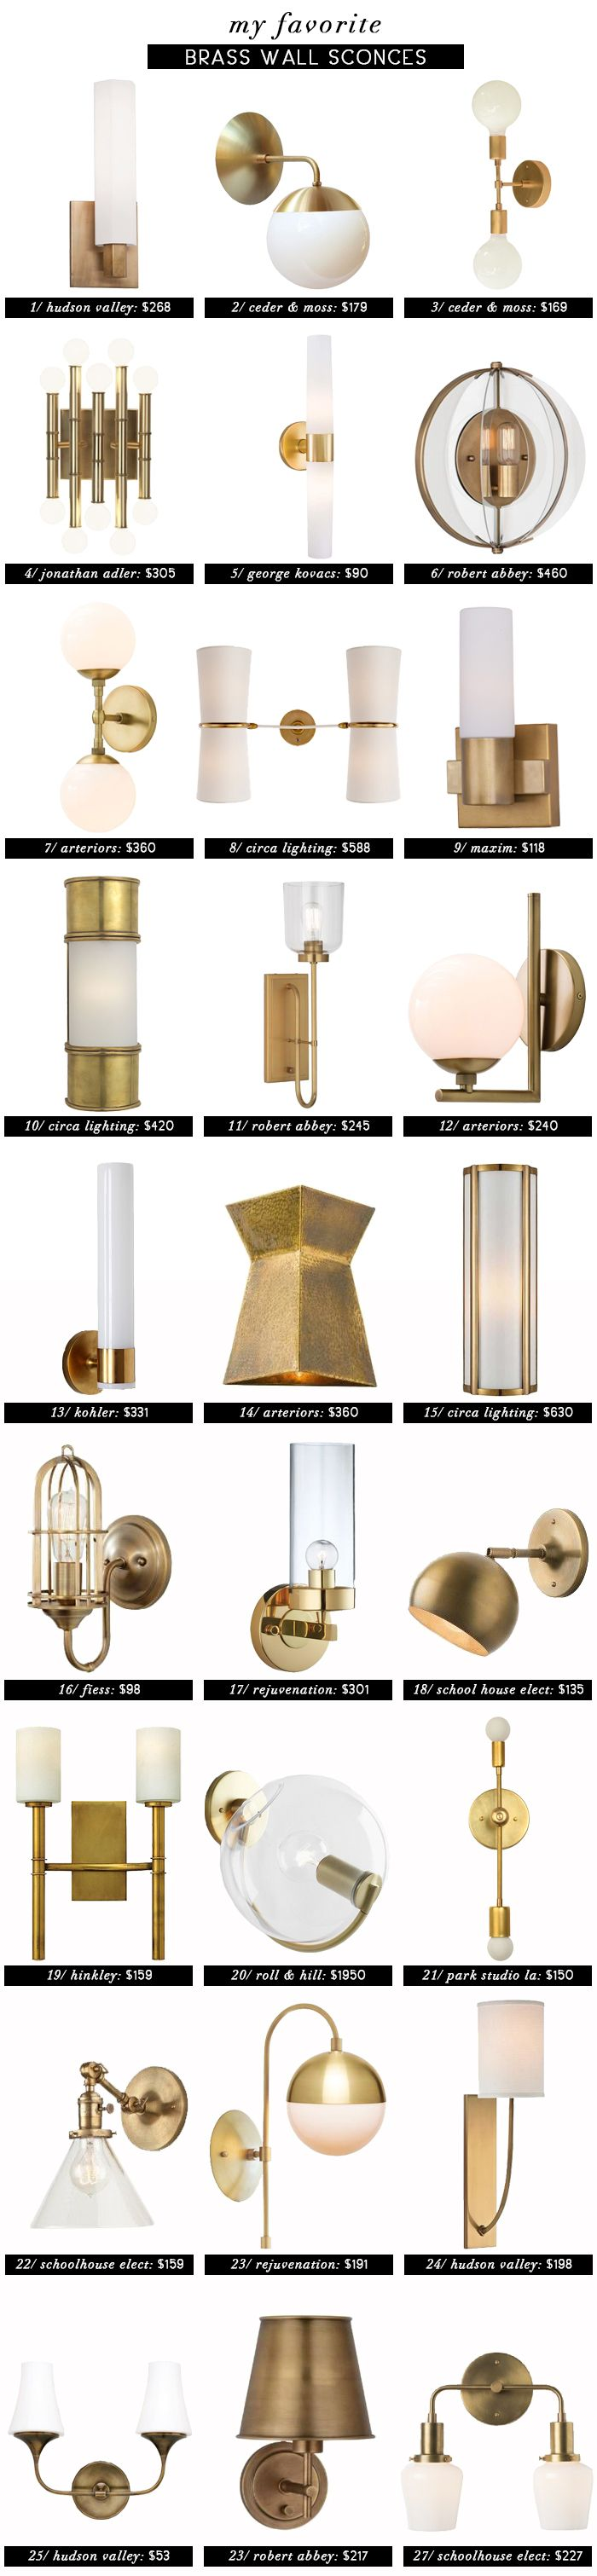 Brass Wall Sconces Roundup